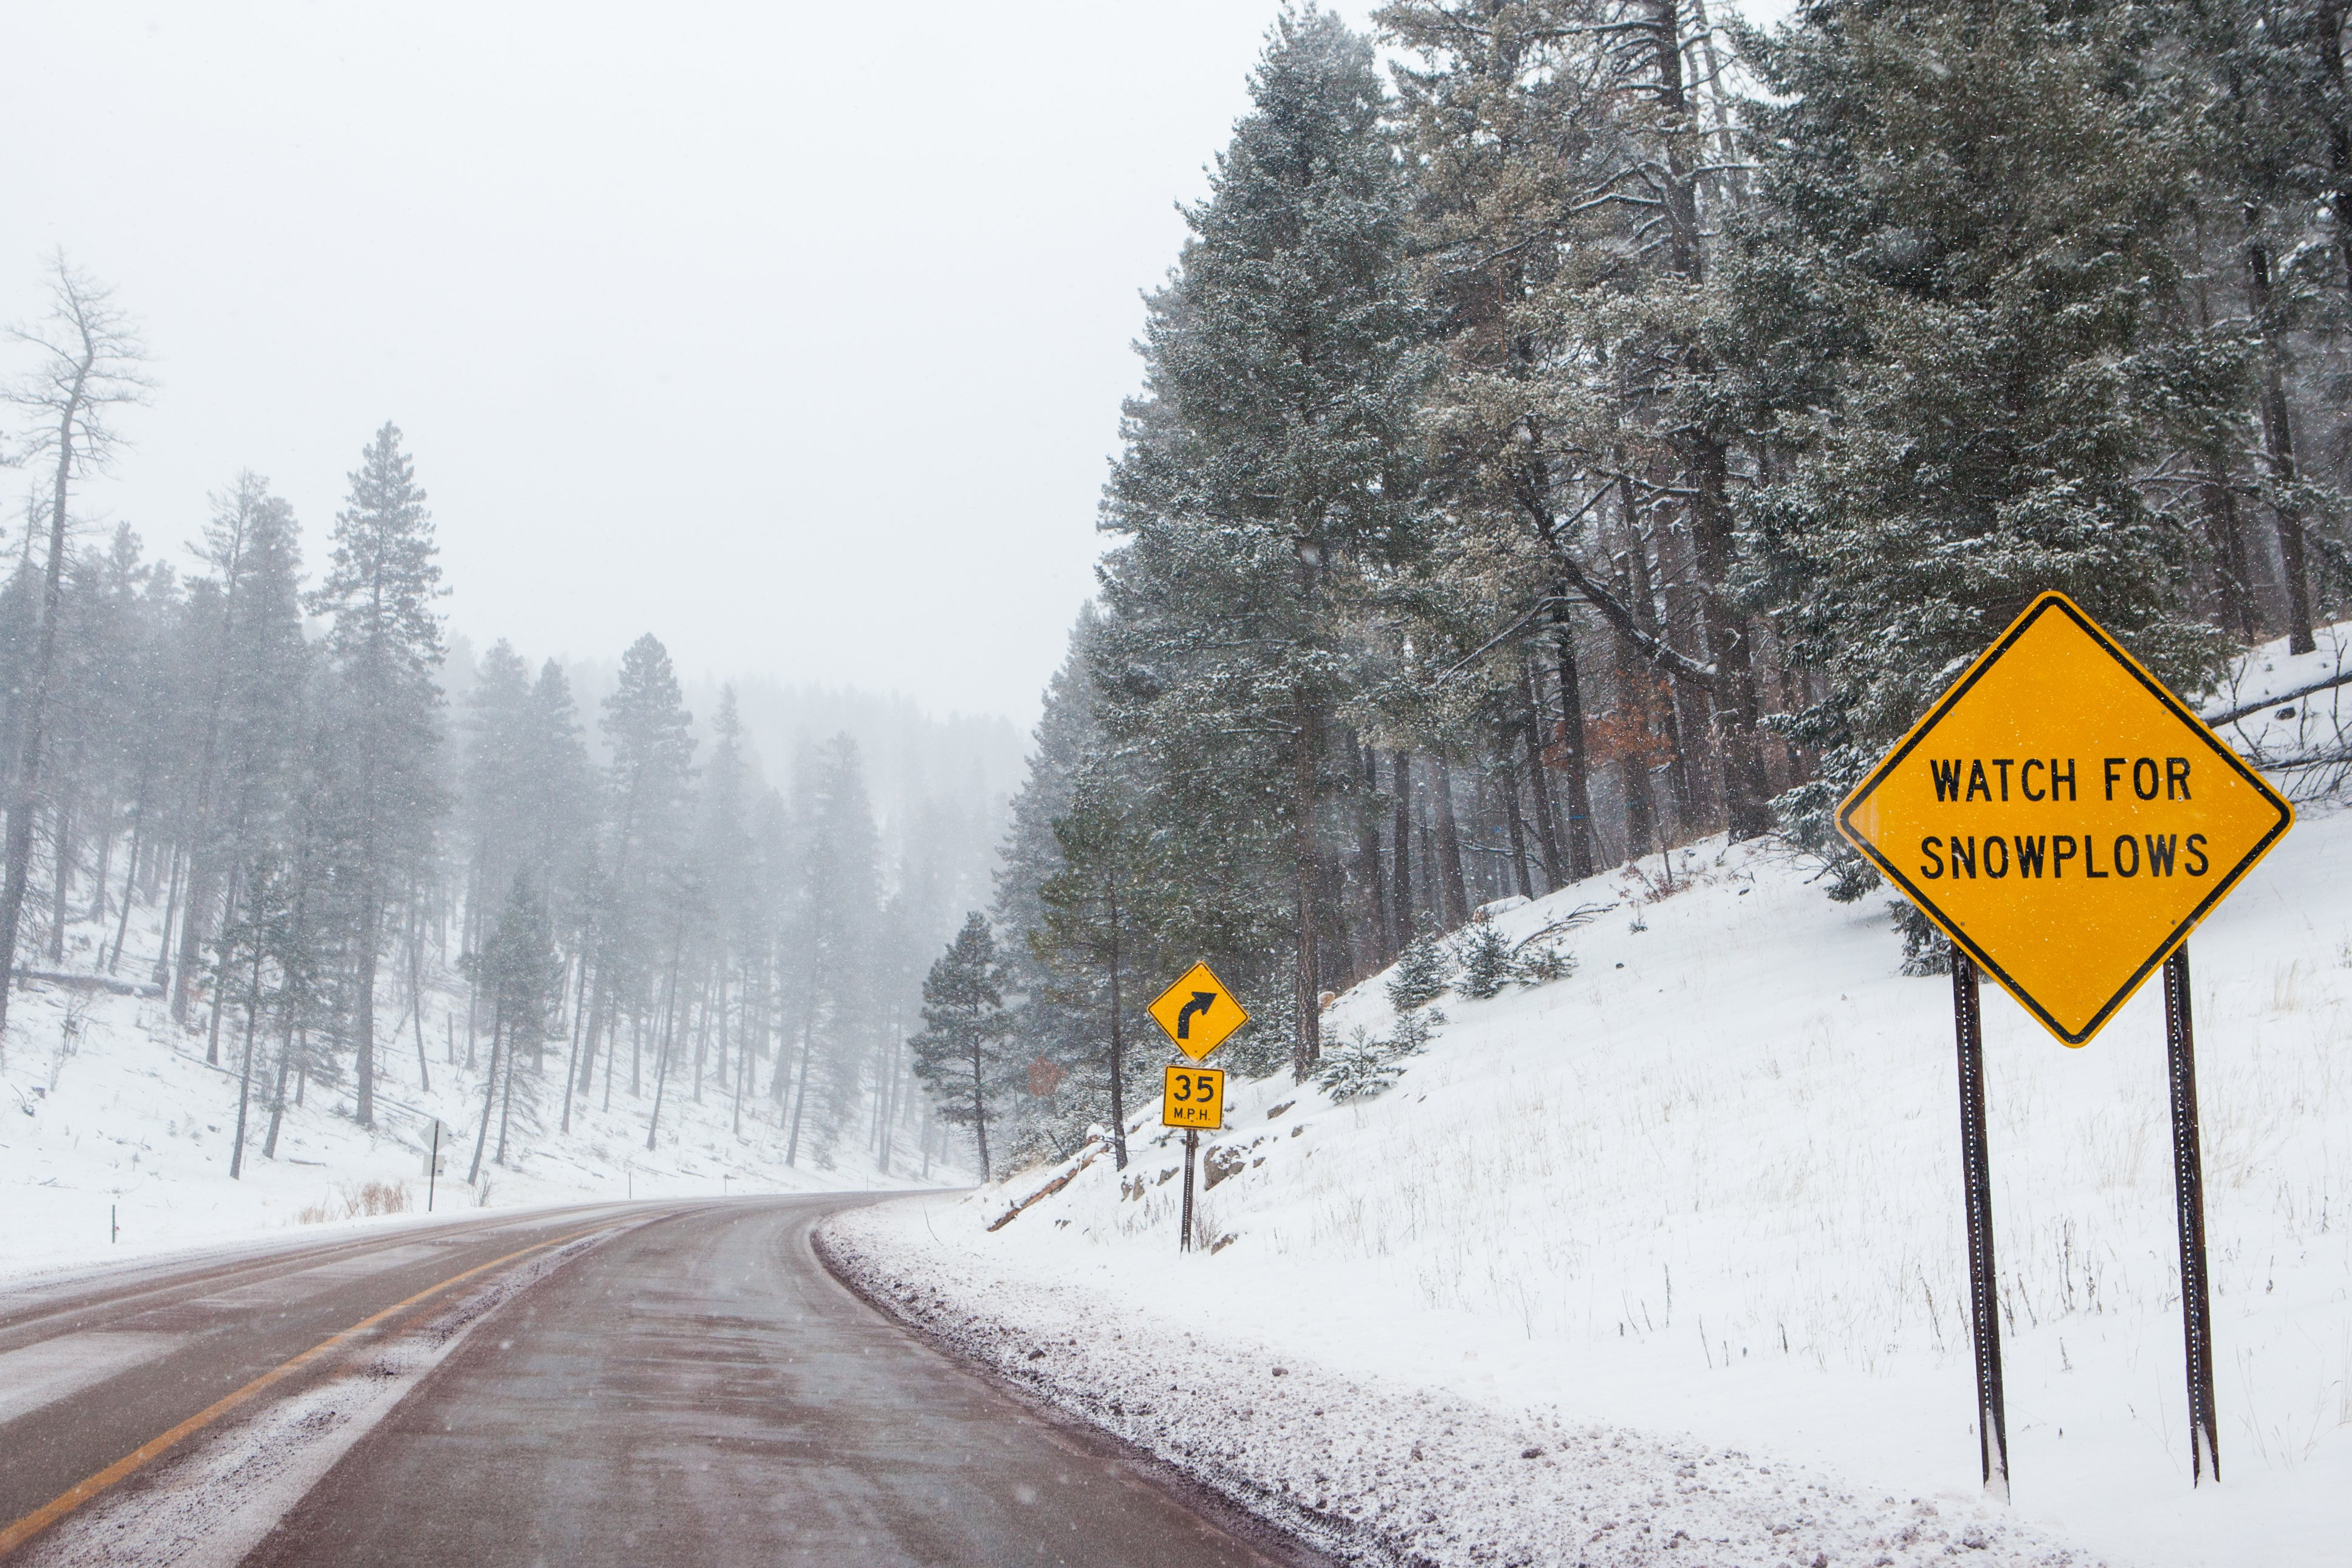 Pictured - A snowy mountain road with warning signs in Cloudcroft, New Mexico | Photo: Shutterstock